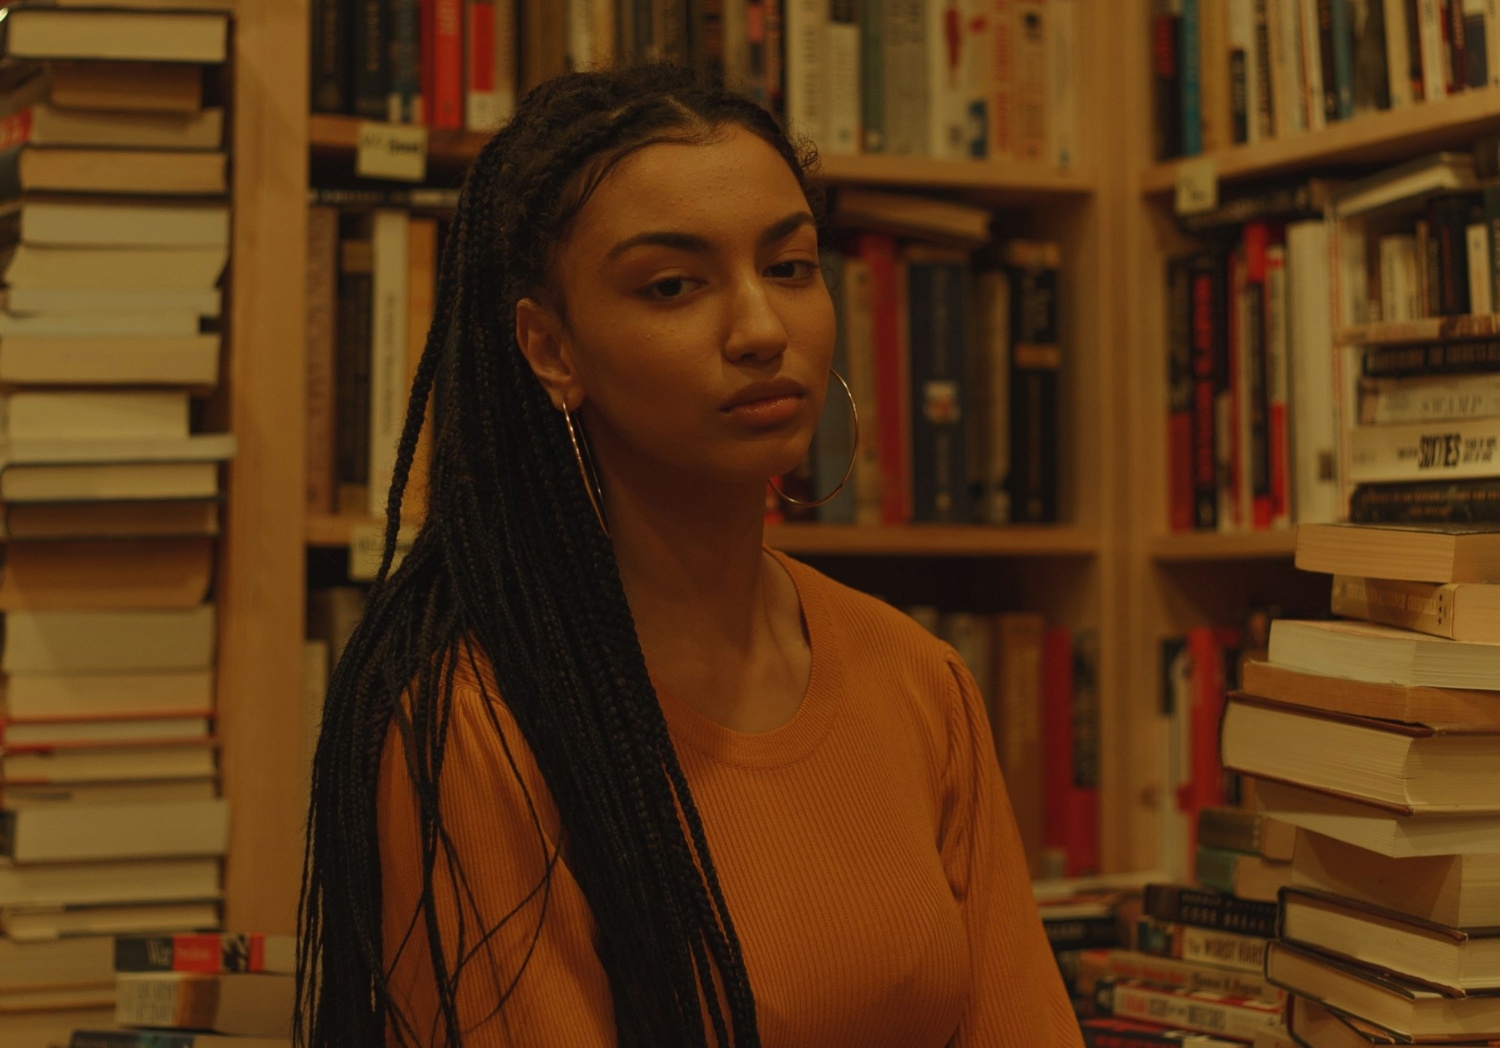 A girl in a bookstore